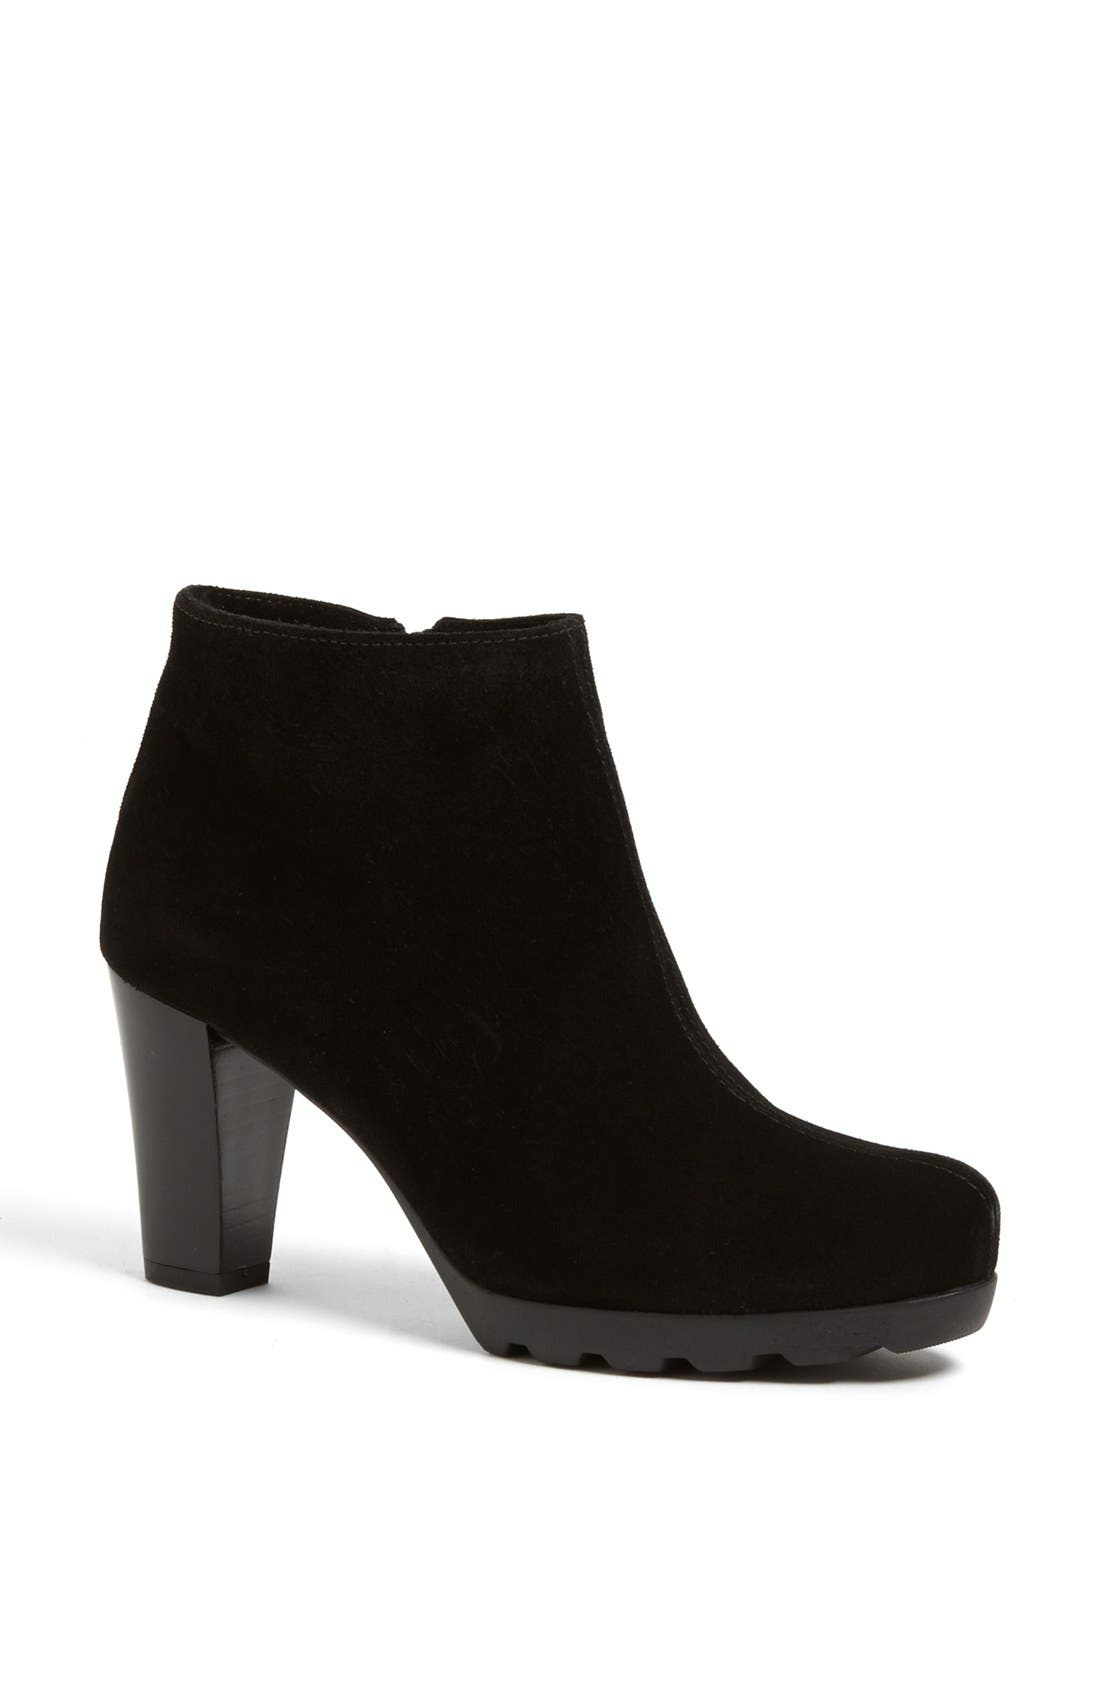 Alternate Image 1 Selected - La Canadienne 'Malin' Waterproof Bootie